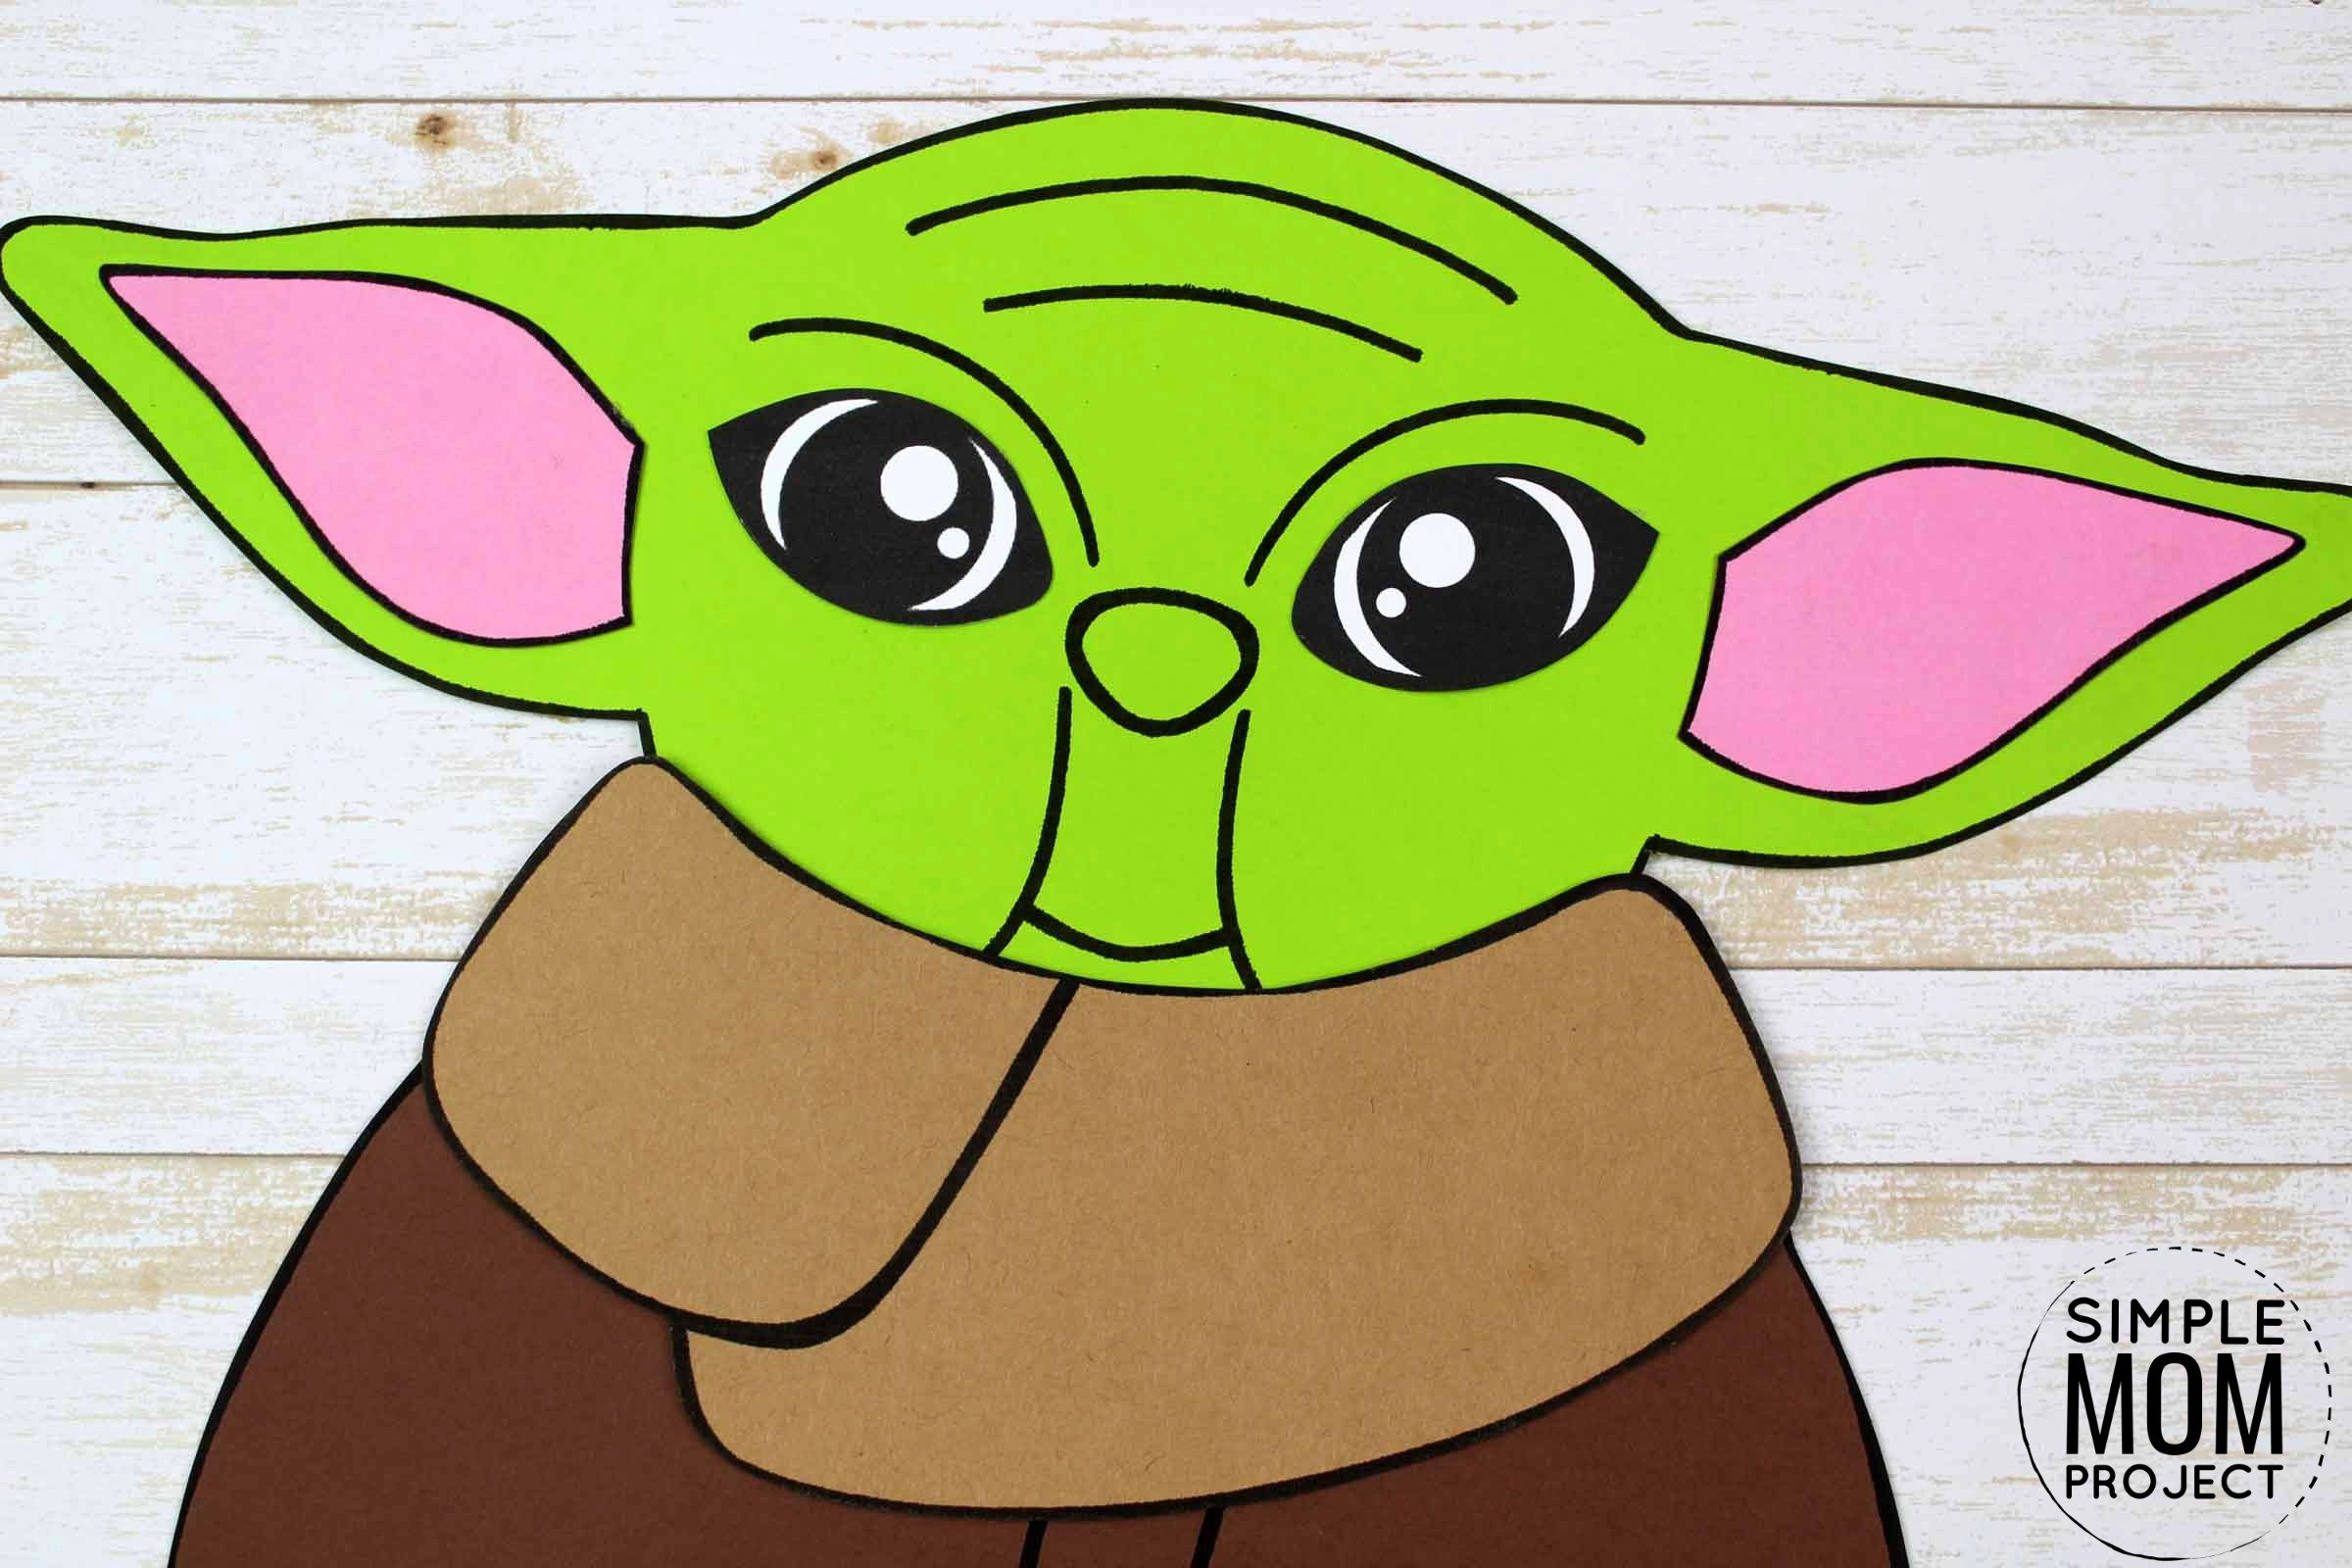 Free Printable Star Wars Baby Yoda Craft for Kids, Preschoolers and toddlers 6